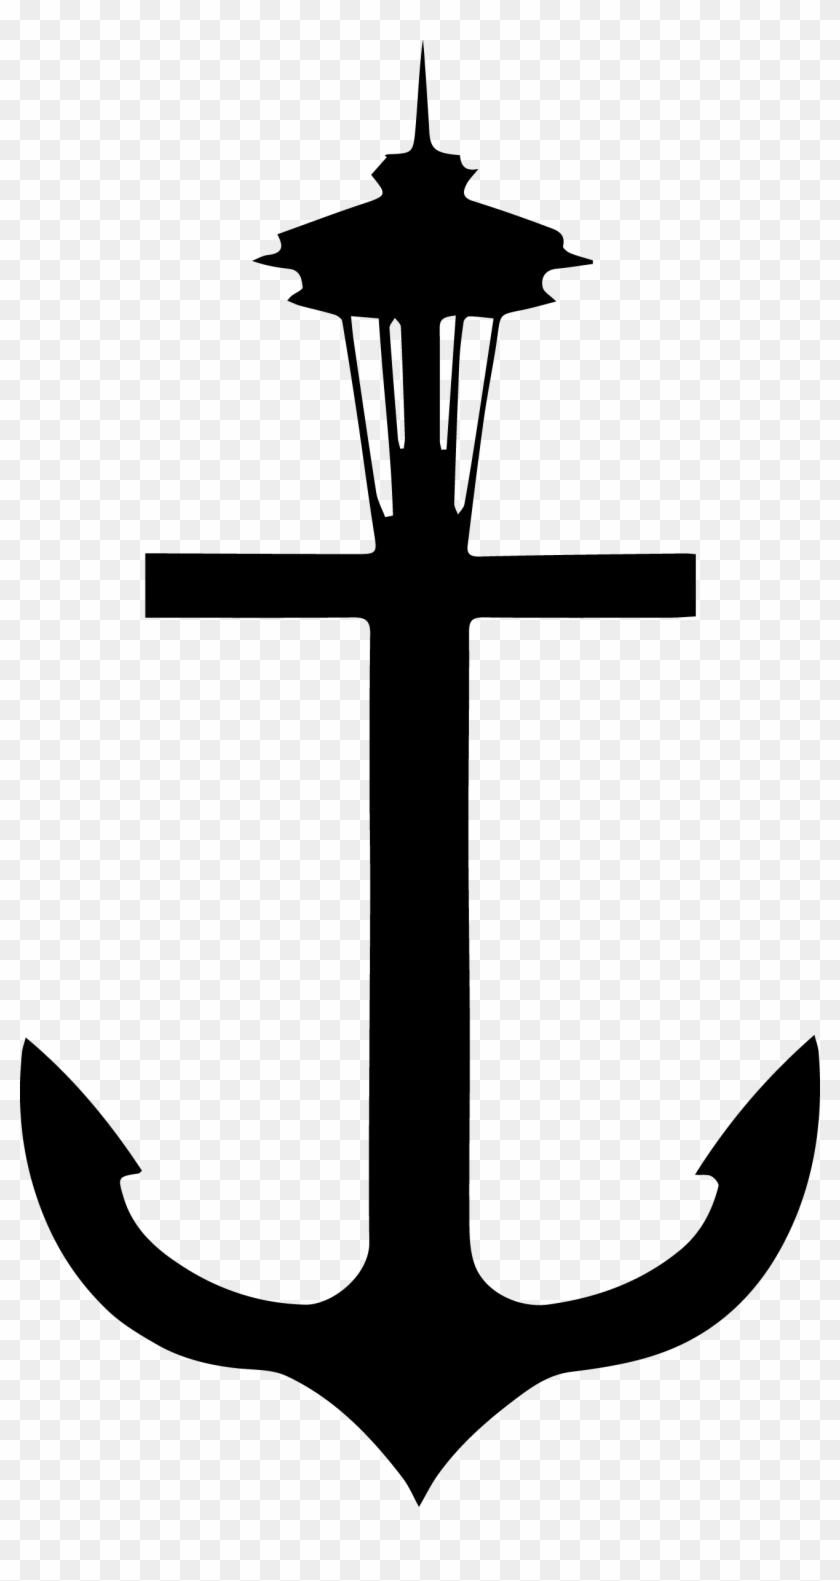 Drawn Anchor Trident - Space Needle Clipart #666262